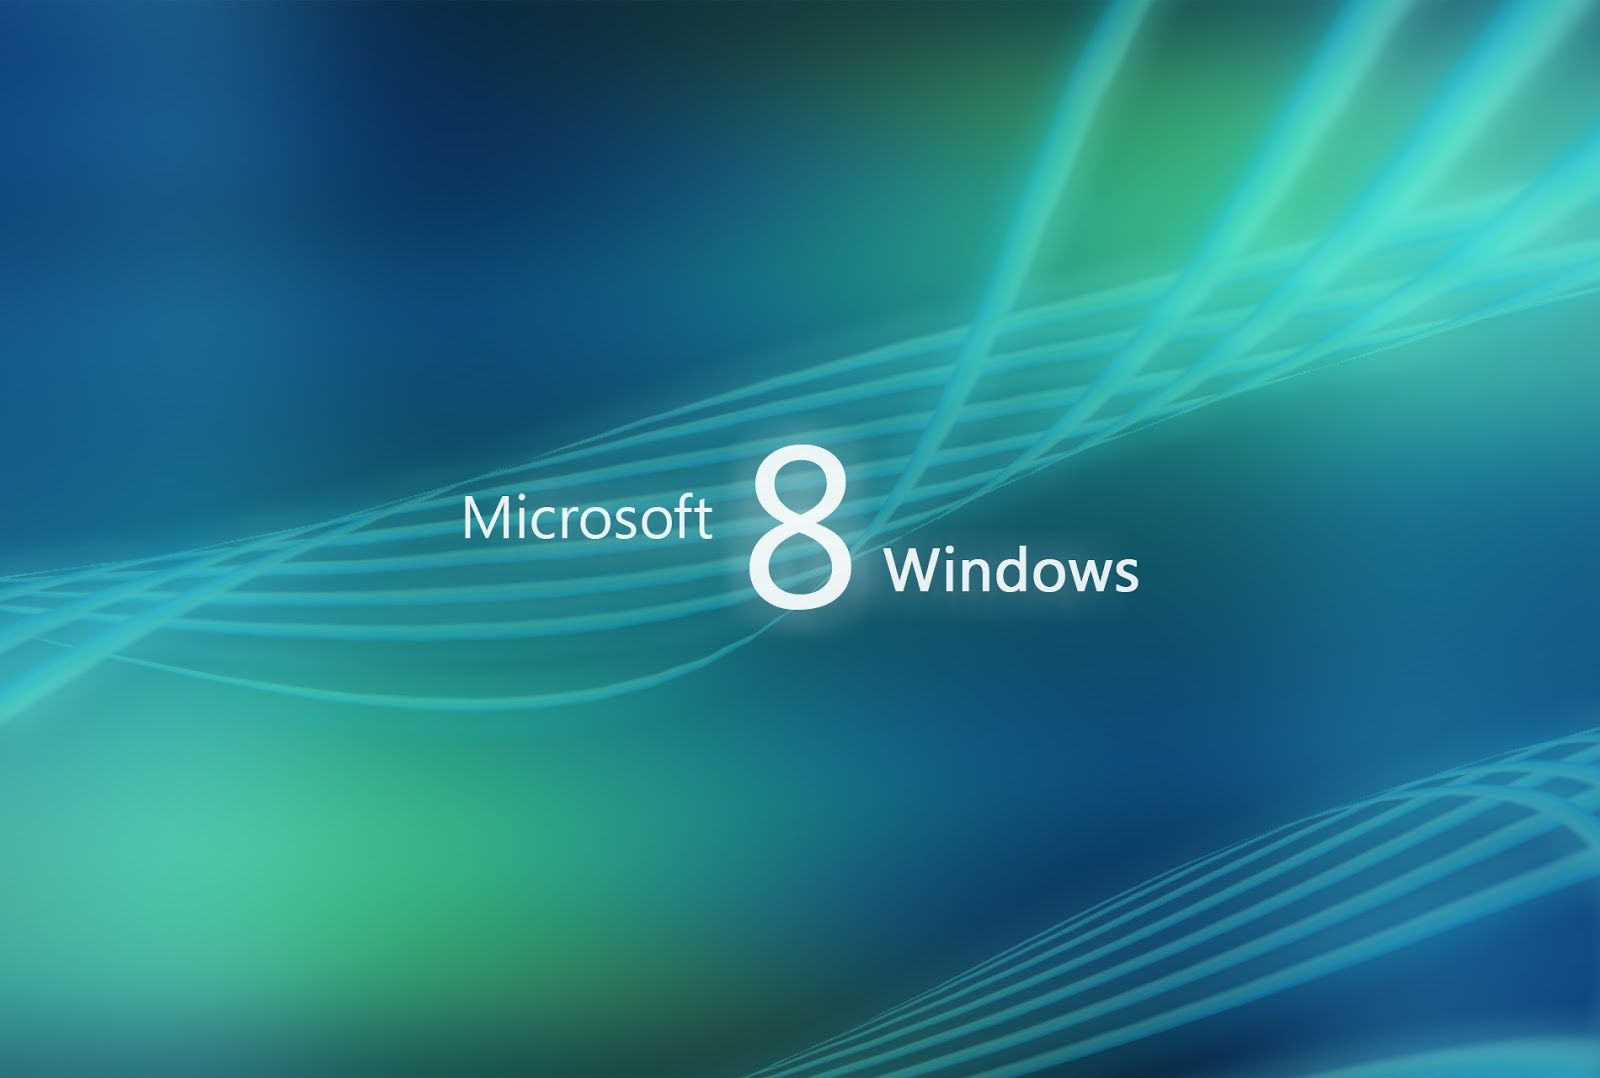 1600x1078 Windows 8 professional wallpaper   Background Wallpapers